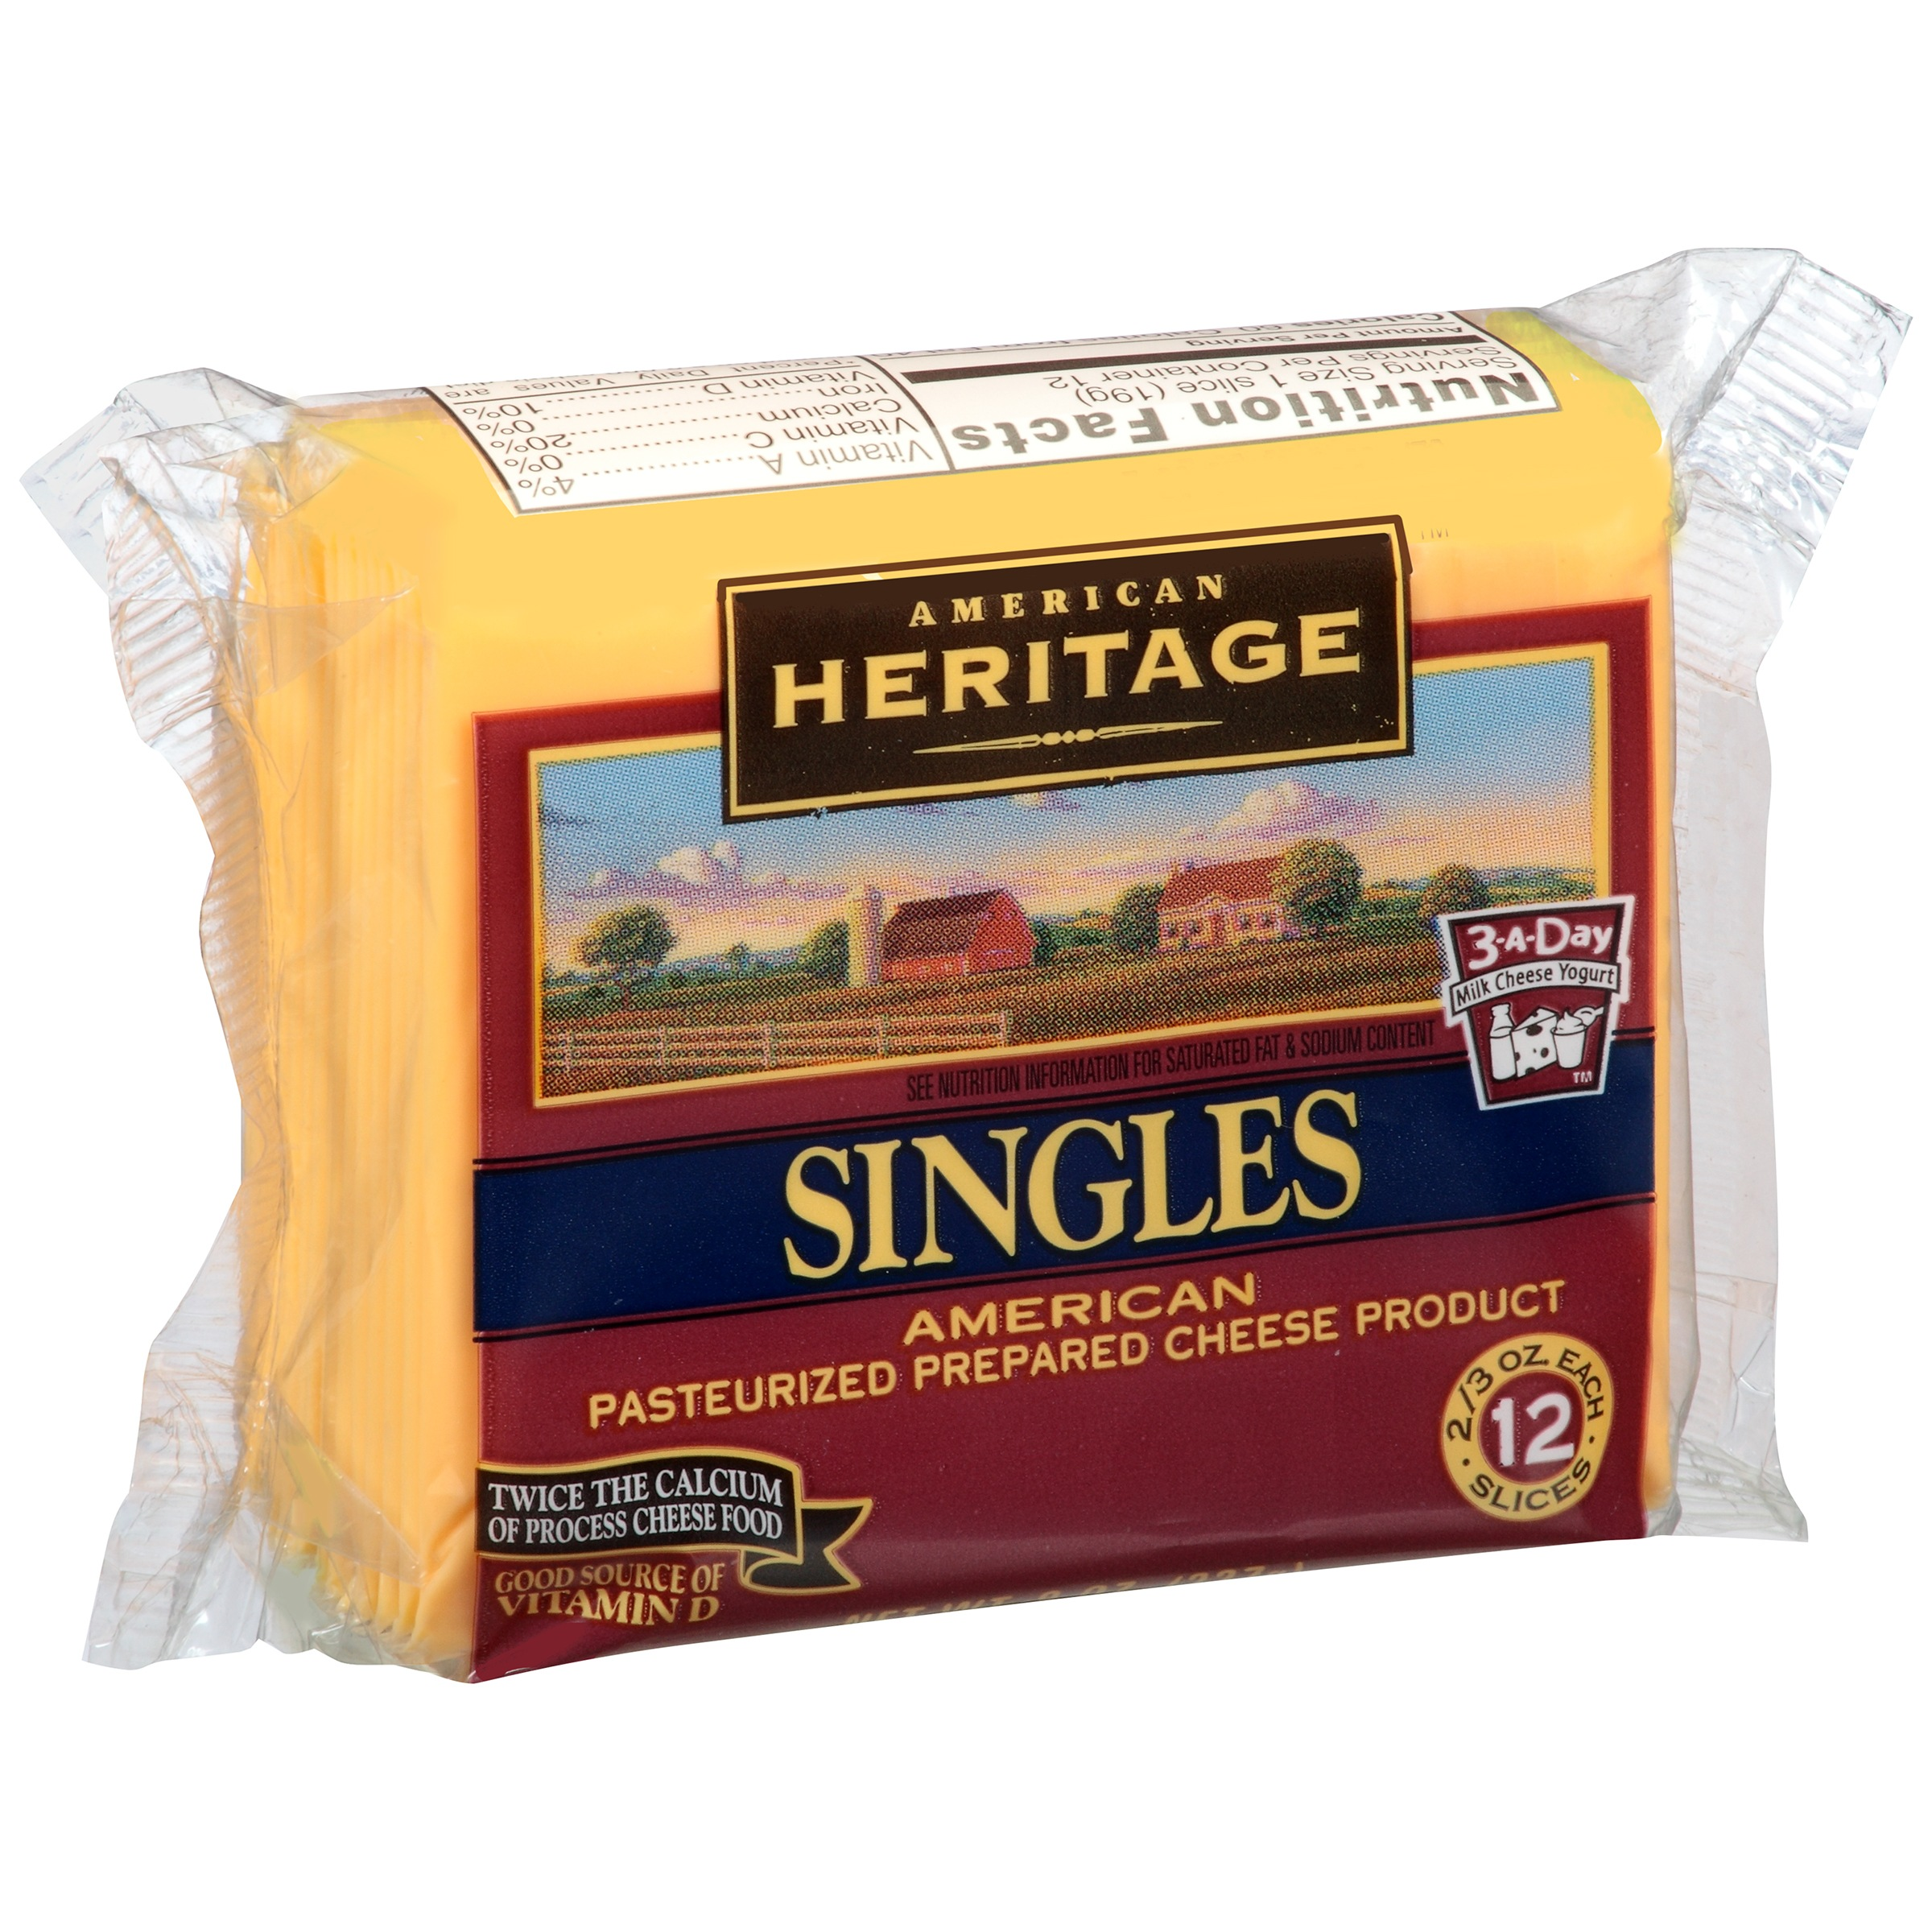 American Heritage American Pasteurized Prepared Cheese Singles, 12 Count